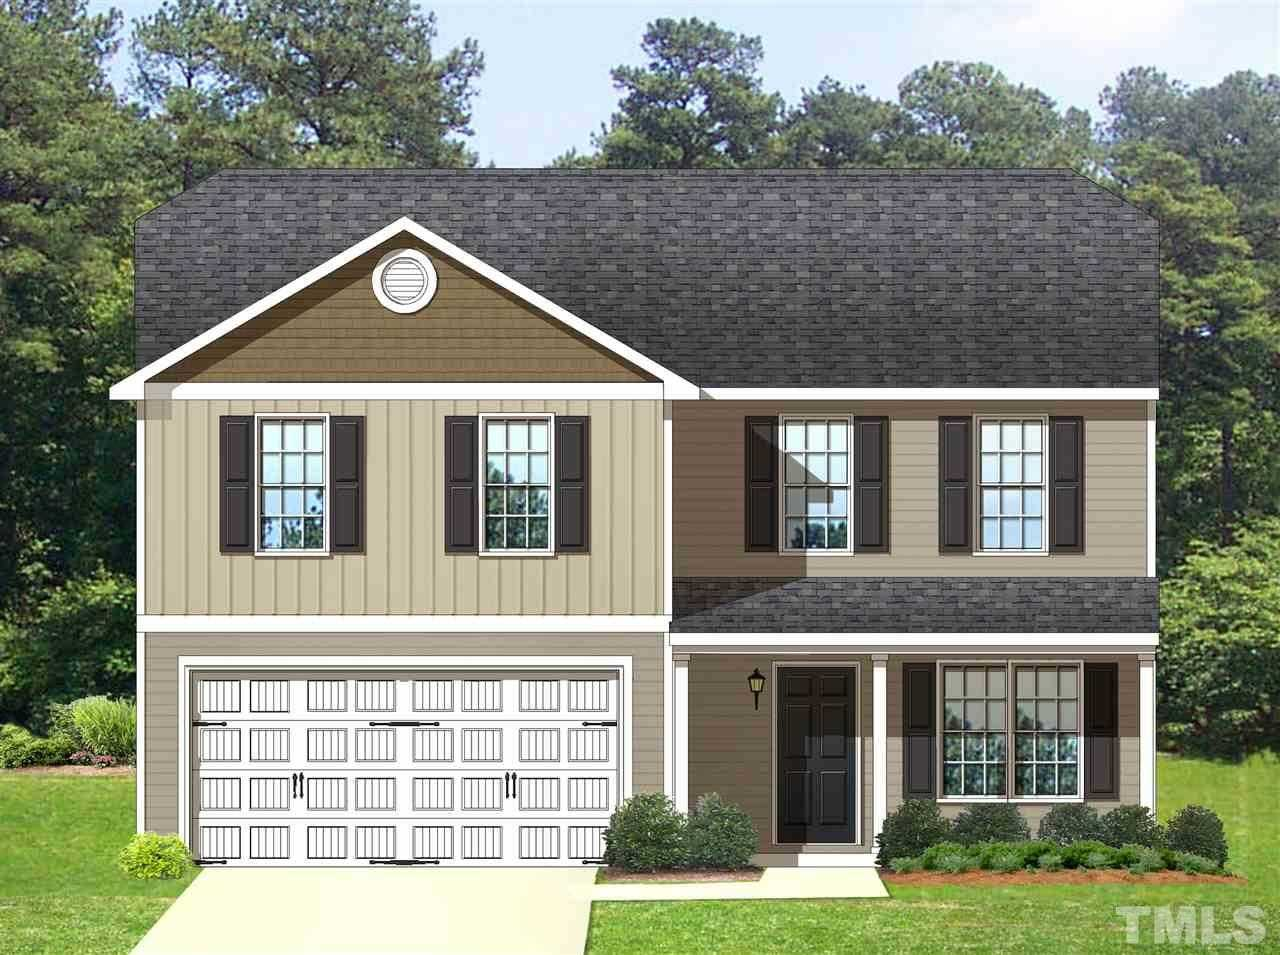 New homes under 200k raleigh nc homemade ftempo for Home designs under 200k